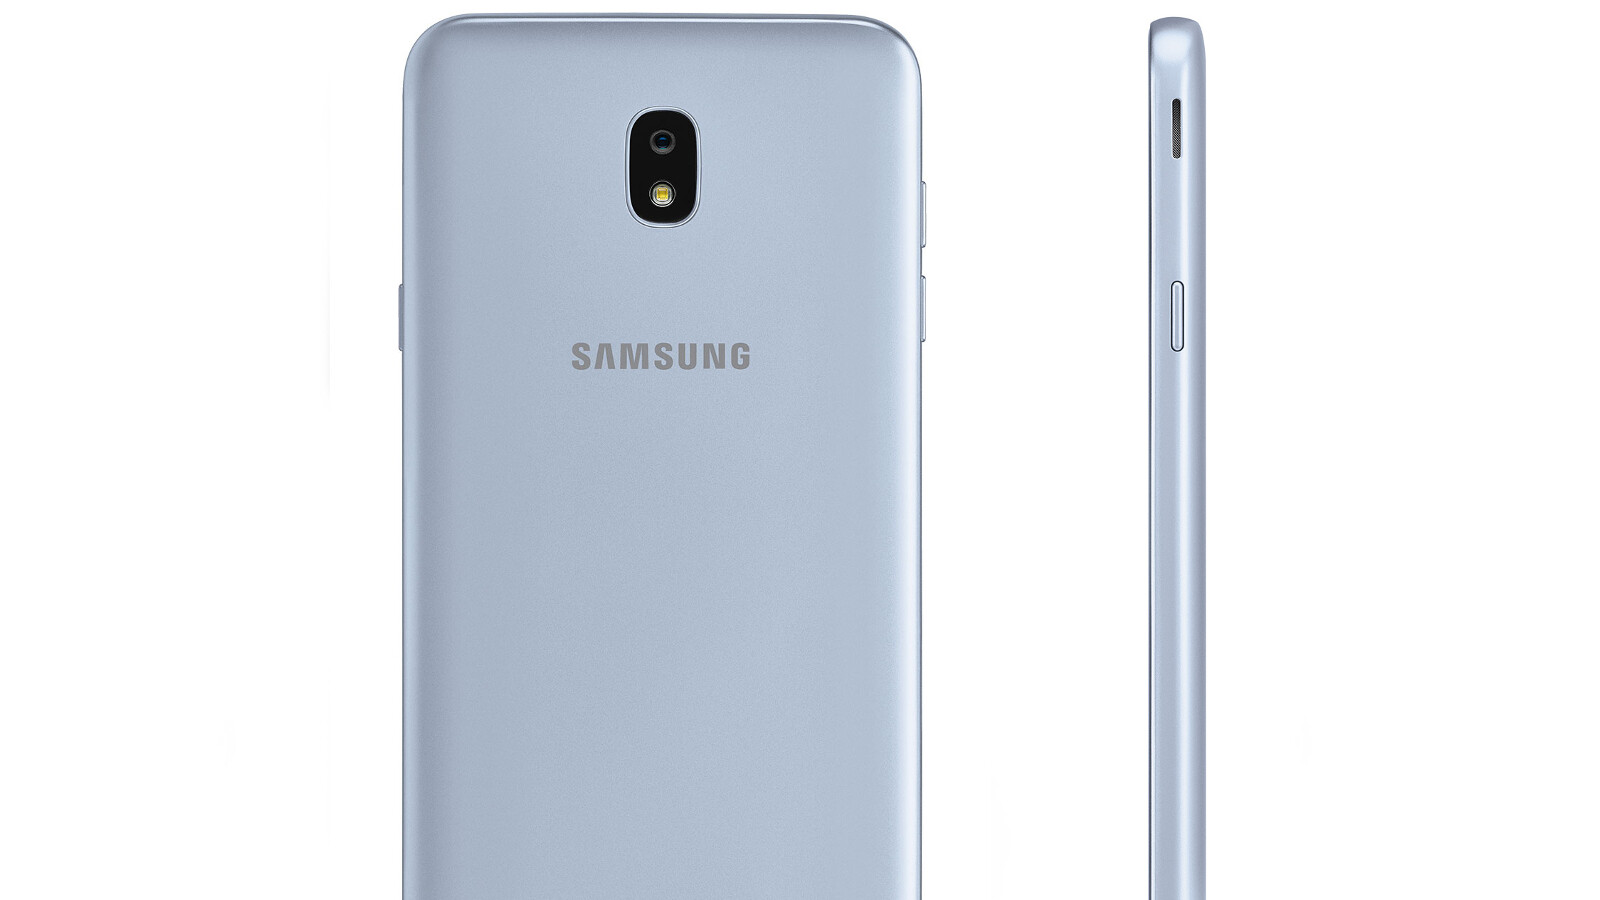 """T-Mobile says the Samsung Galaxy J7 Star is """"coming soon,"""" and the phone's home screen likely reveals its release date: July 13 (next Friday)."""